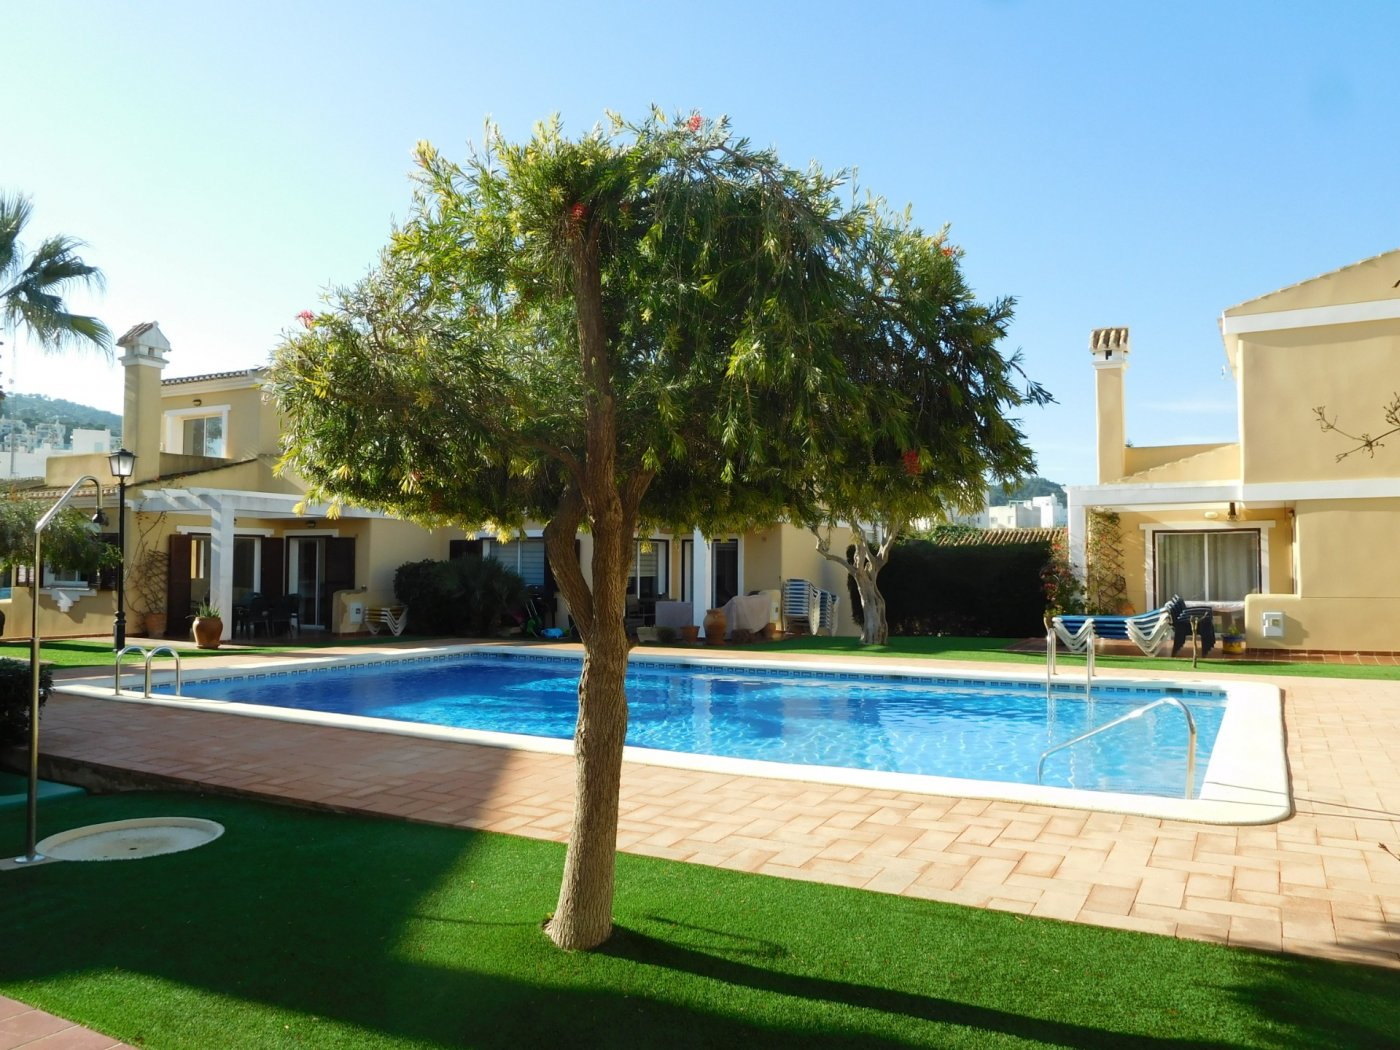 Gallery Image 1 of Casa For rent in Los Naranjos, La Manga Club With Pool